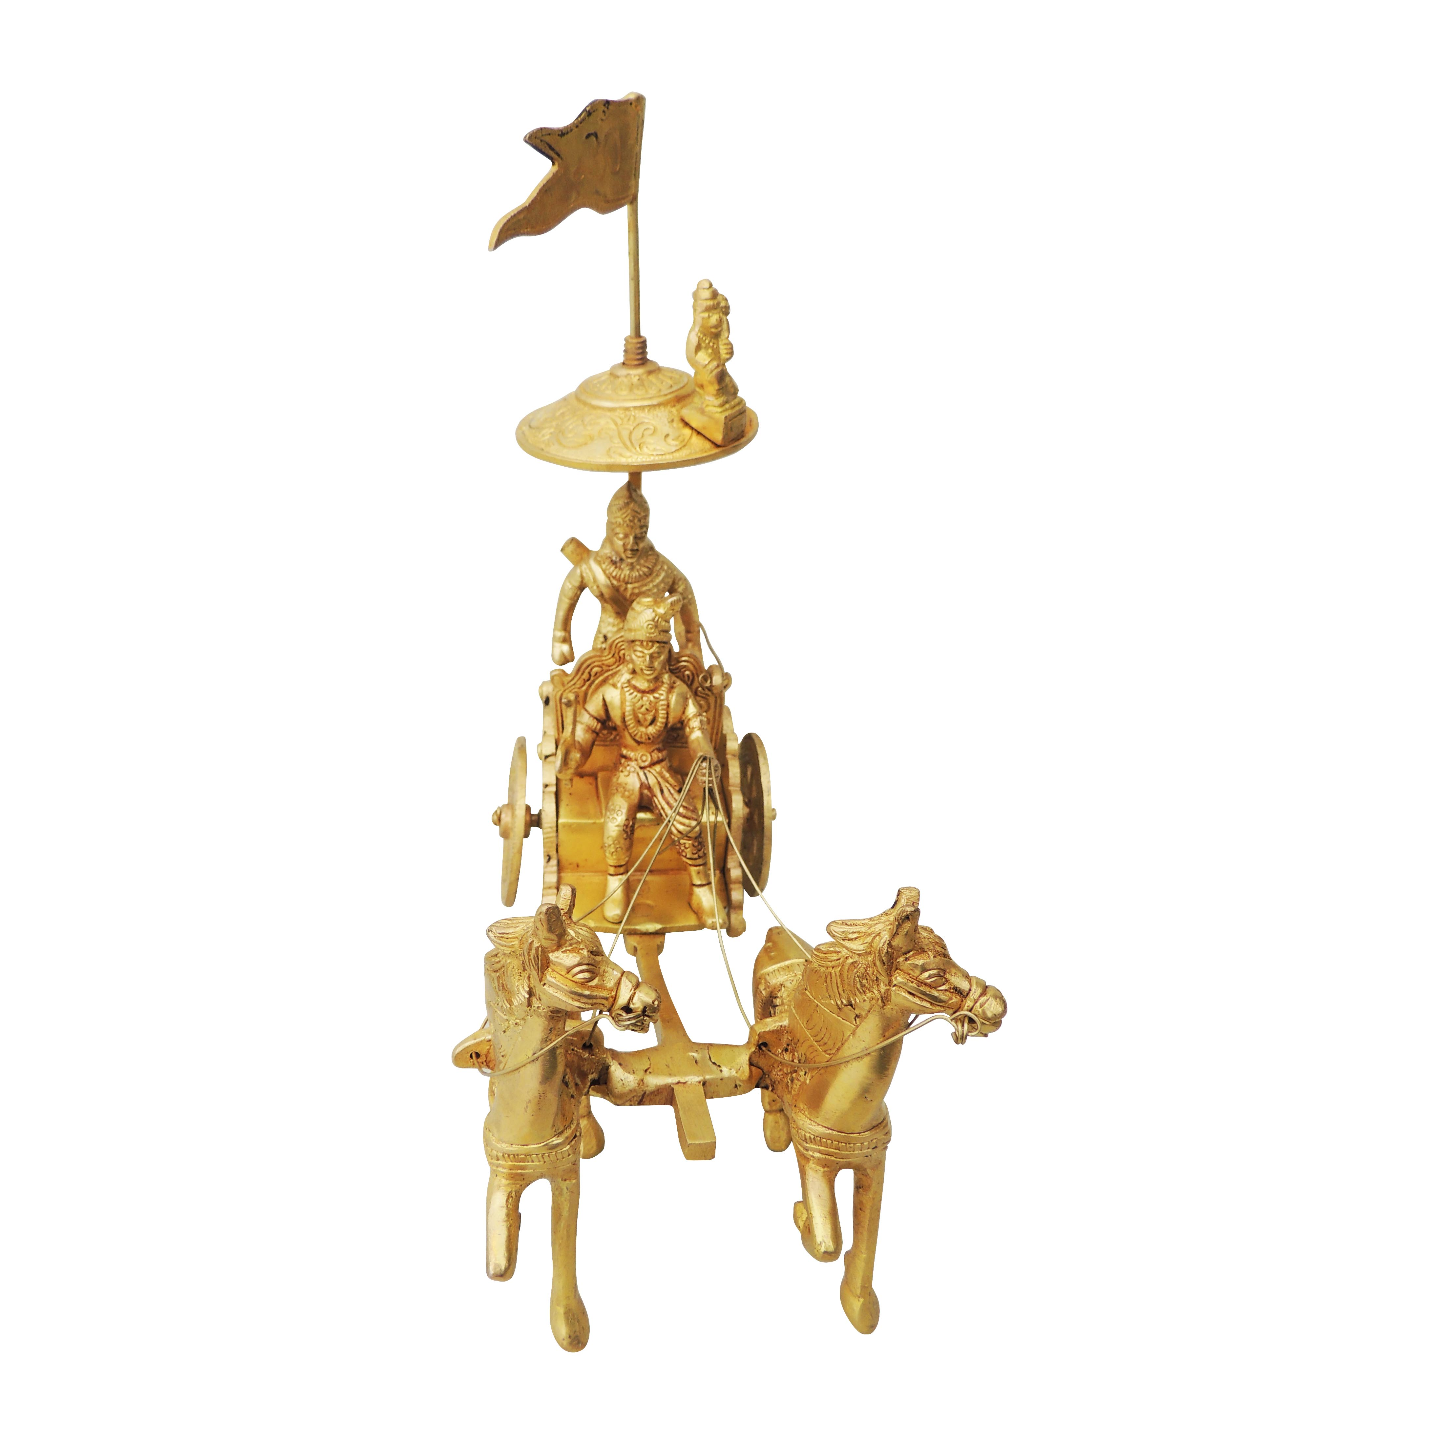 Brass Showpiece Arjun Rath - 8.5 Inch (BS070 B)